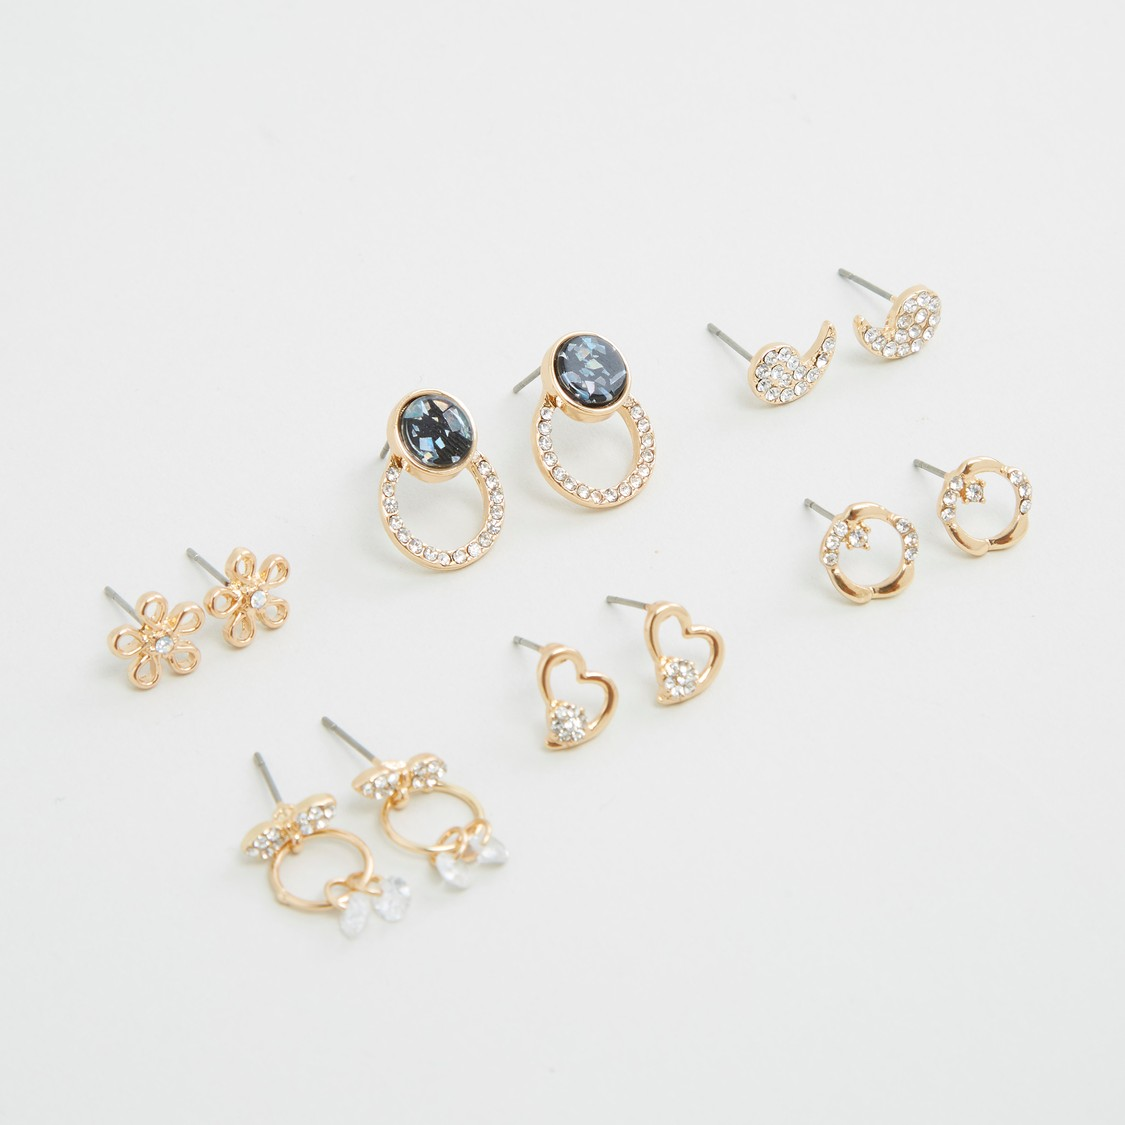 Set of 6 - Studded Earrings with Pushback Closure